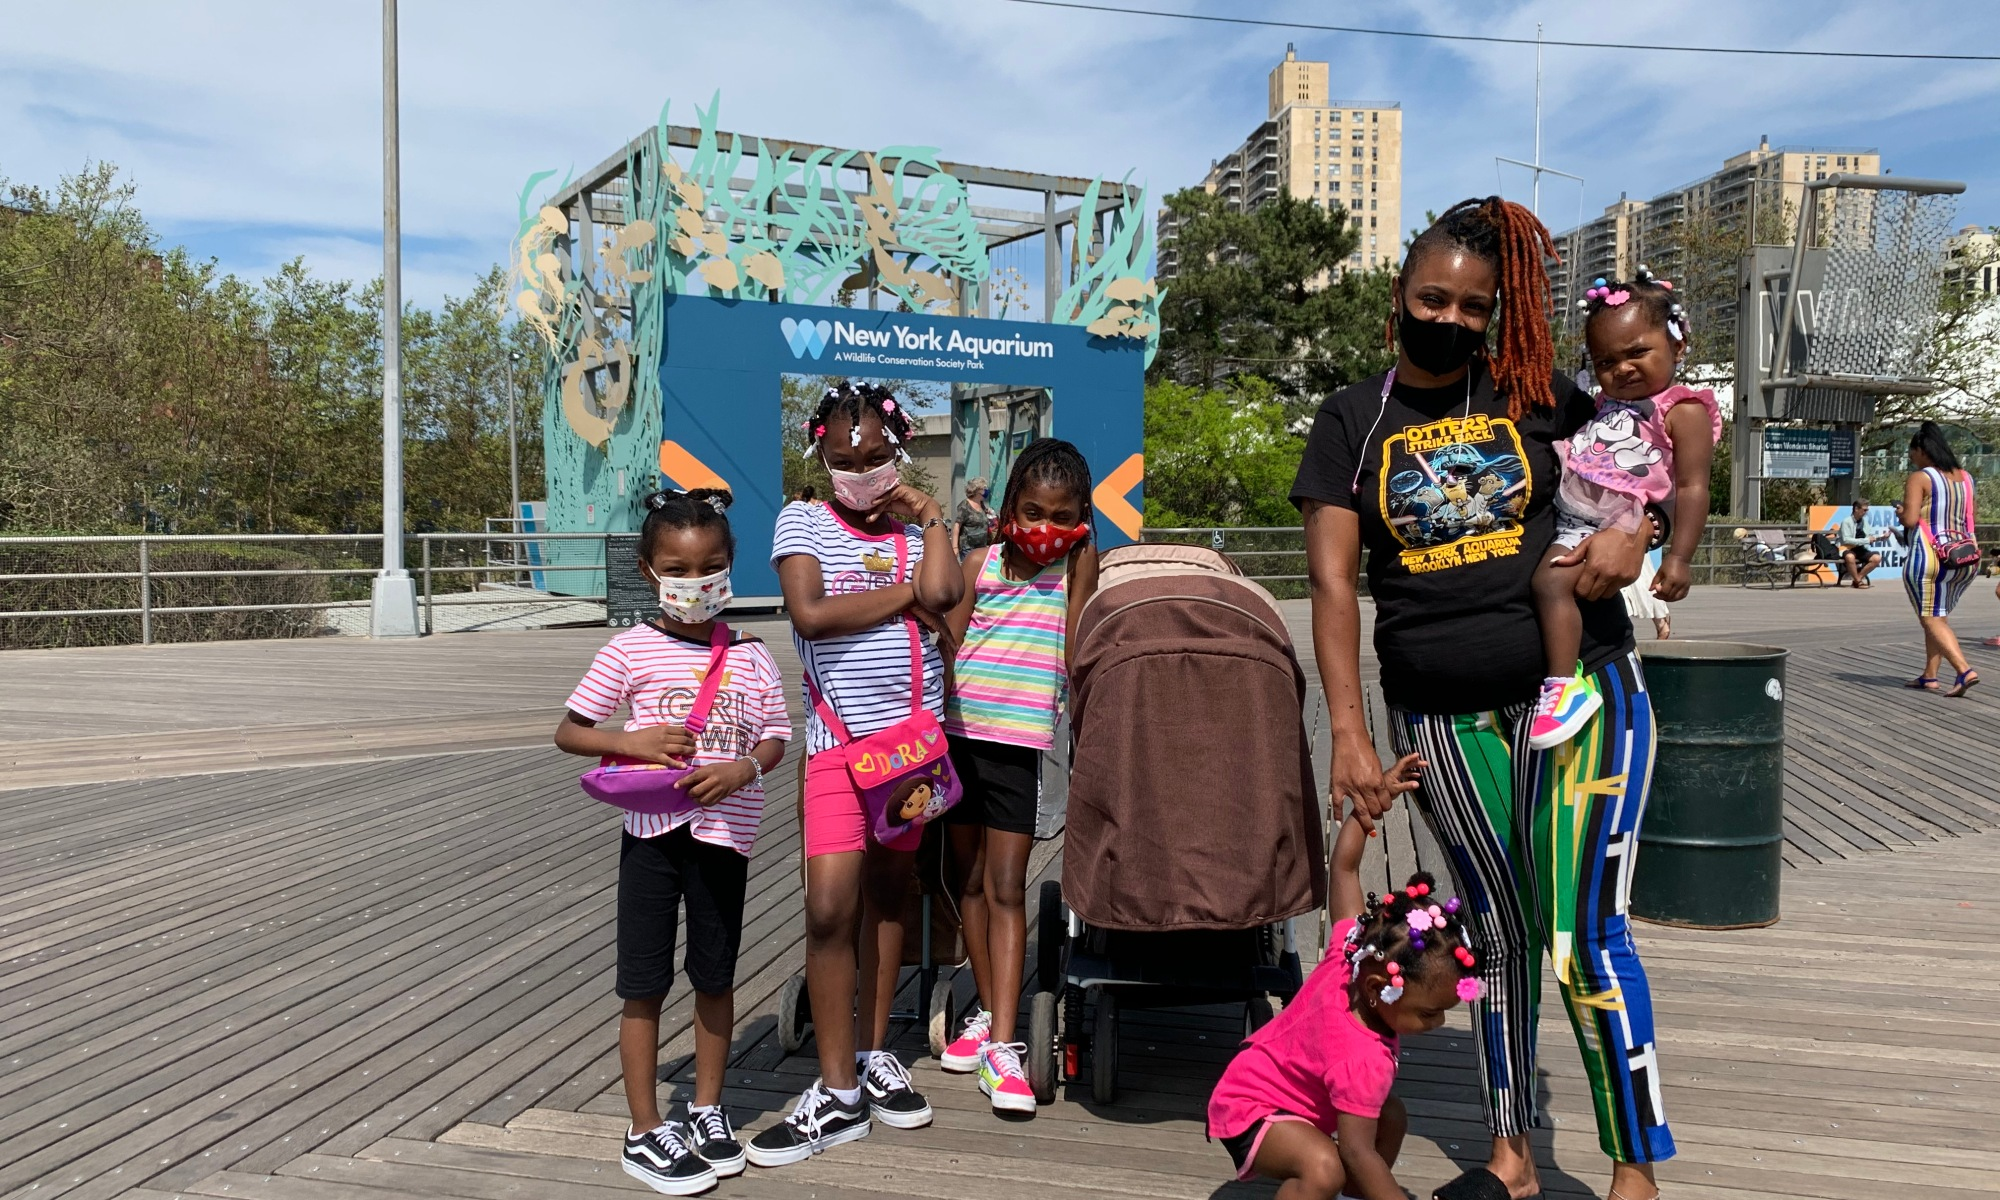 Brooklyn family at Coney Island wearing masks. Photo by ConsumerMojo.com